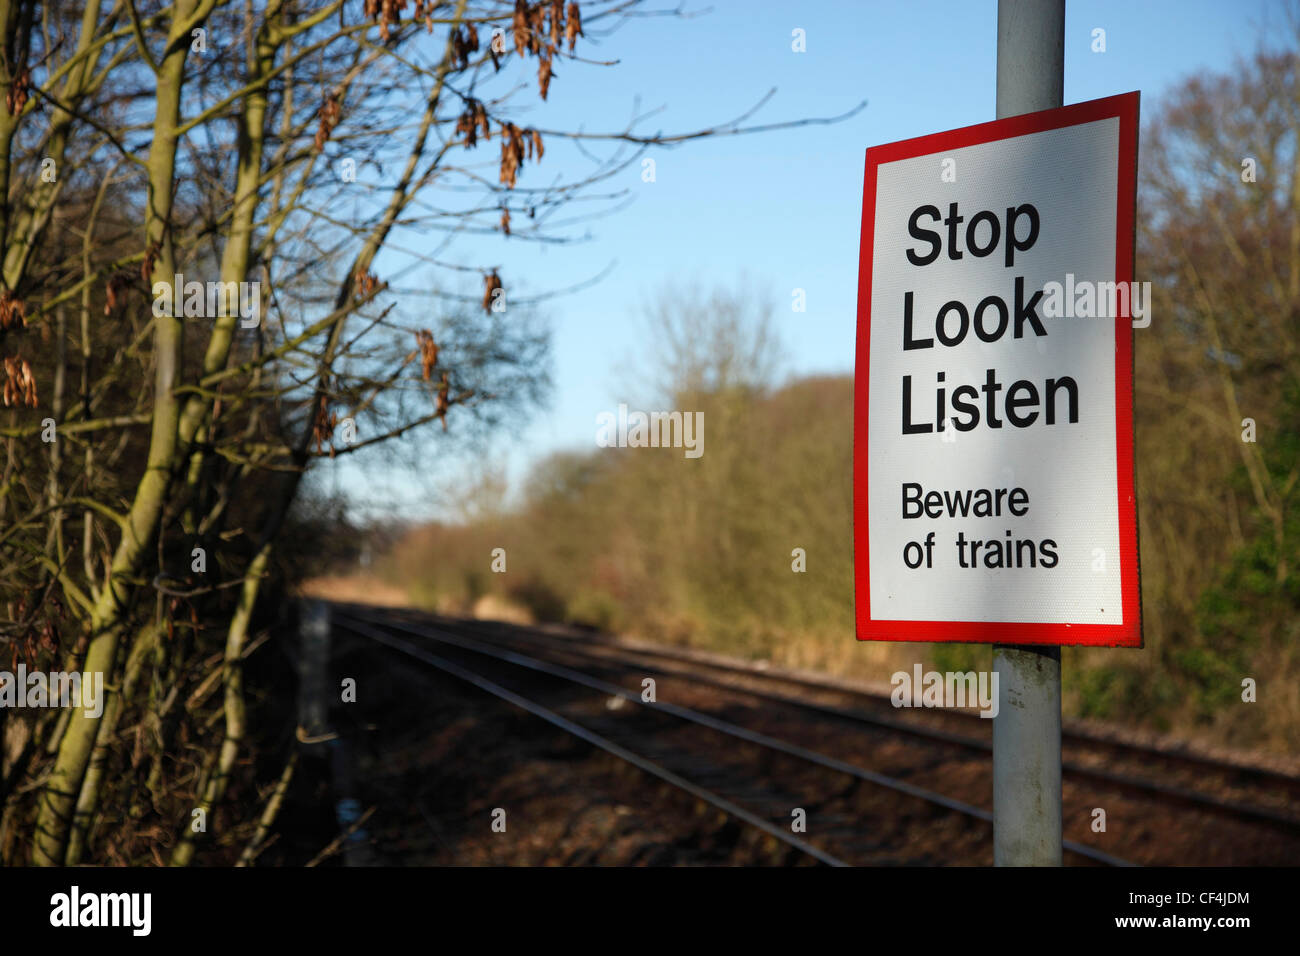 A beware of trains sign by the side of the railway line with a speeding train approaching In Norwich. - Stock Image